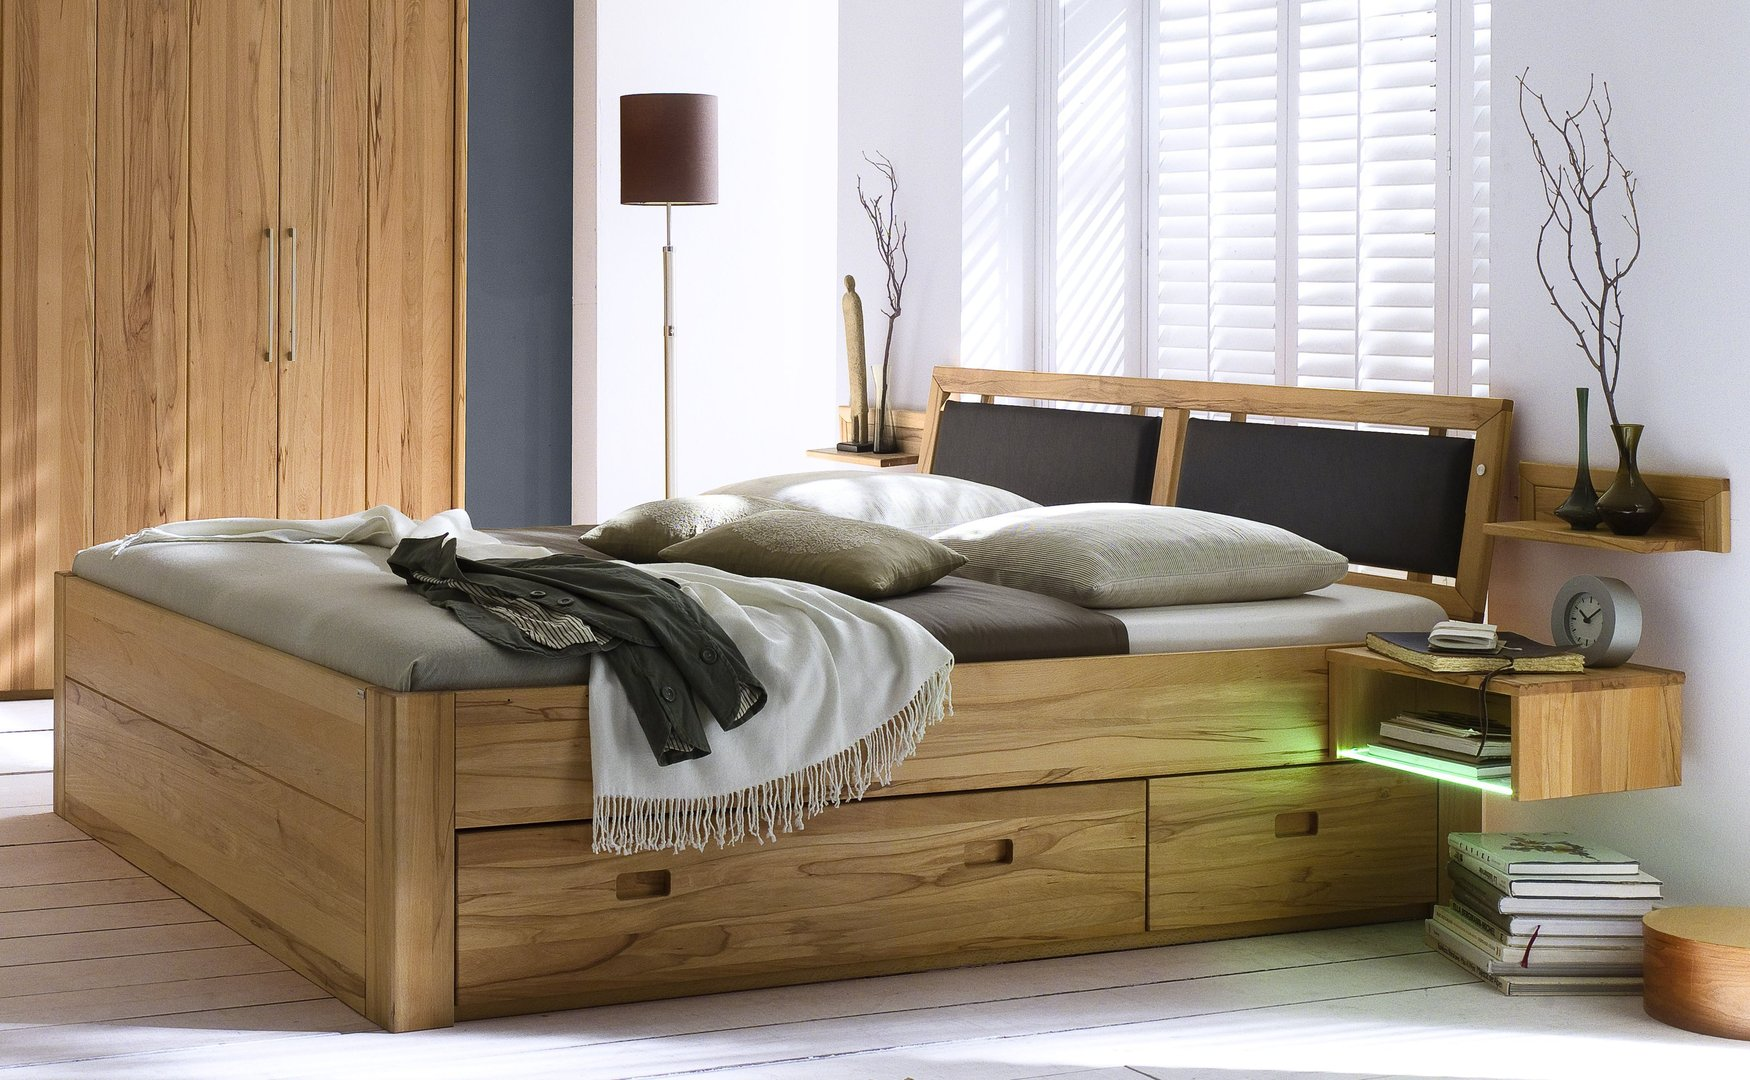 betten casa innatura massivholzm bel online shop. Black Bedroom Furniture Sets. Home Design Ideas